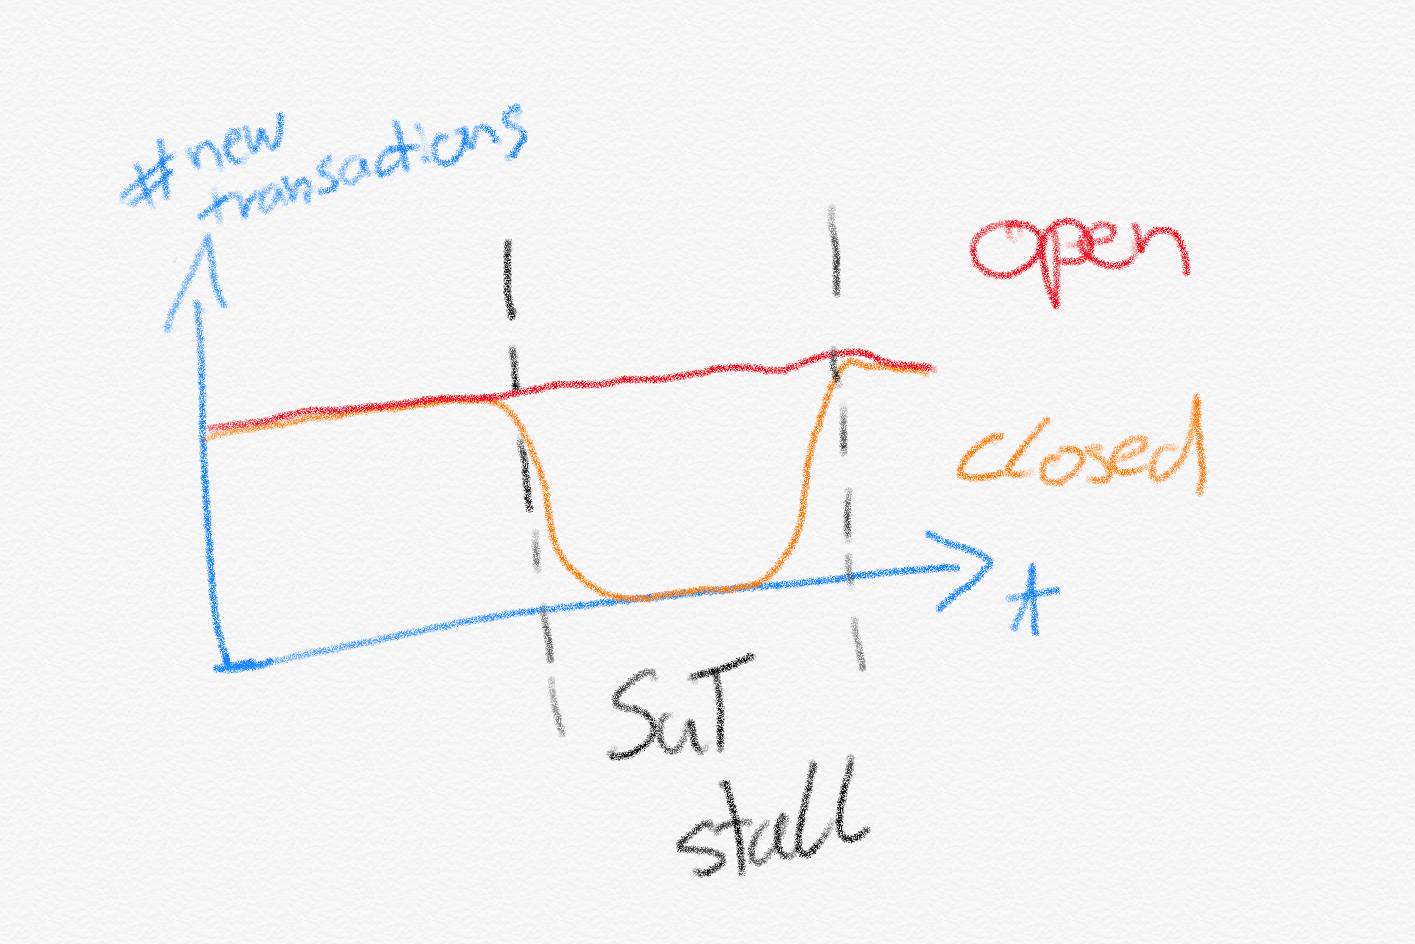 New transactions started with open VS closed models